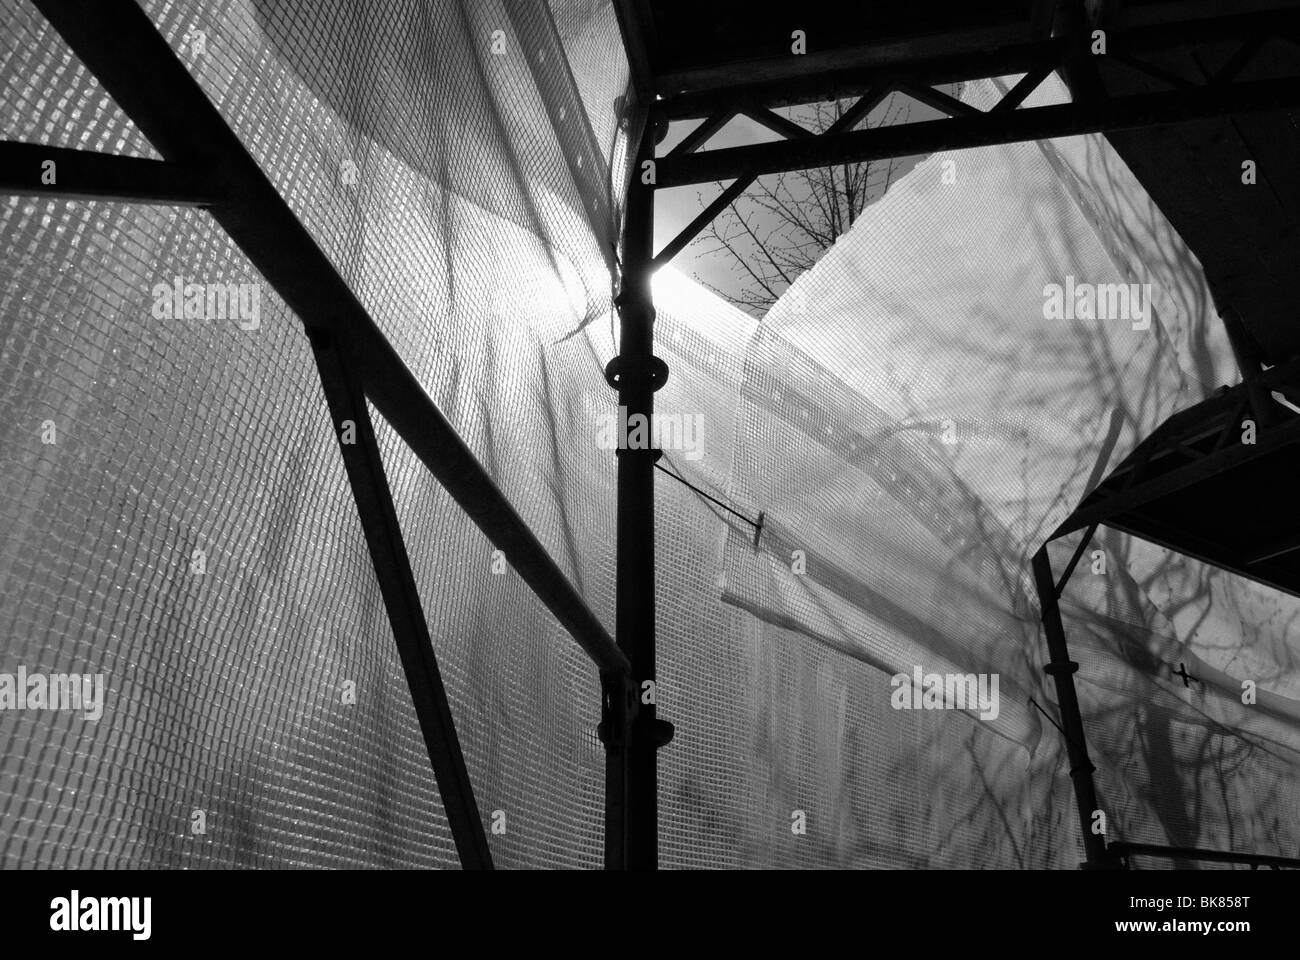 UNDER A SCAFFOLDING - Stock Image